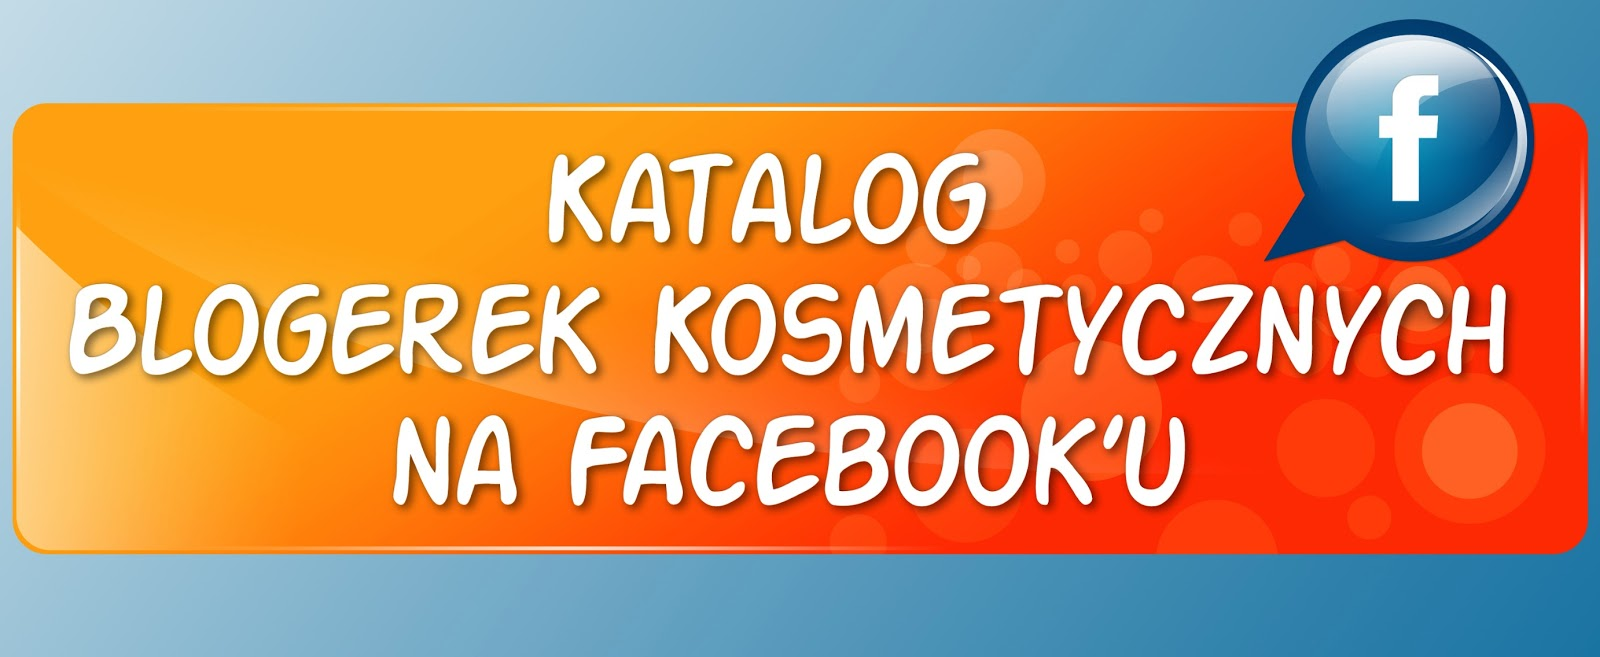 Katalog blogerek FB